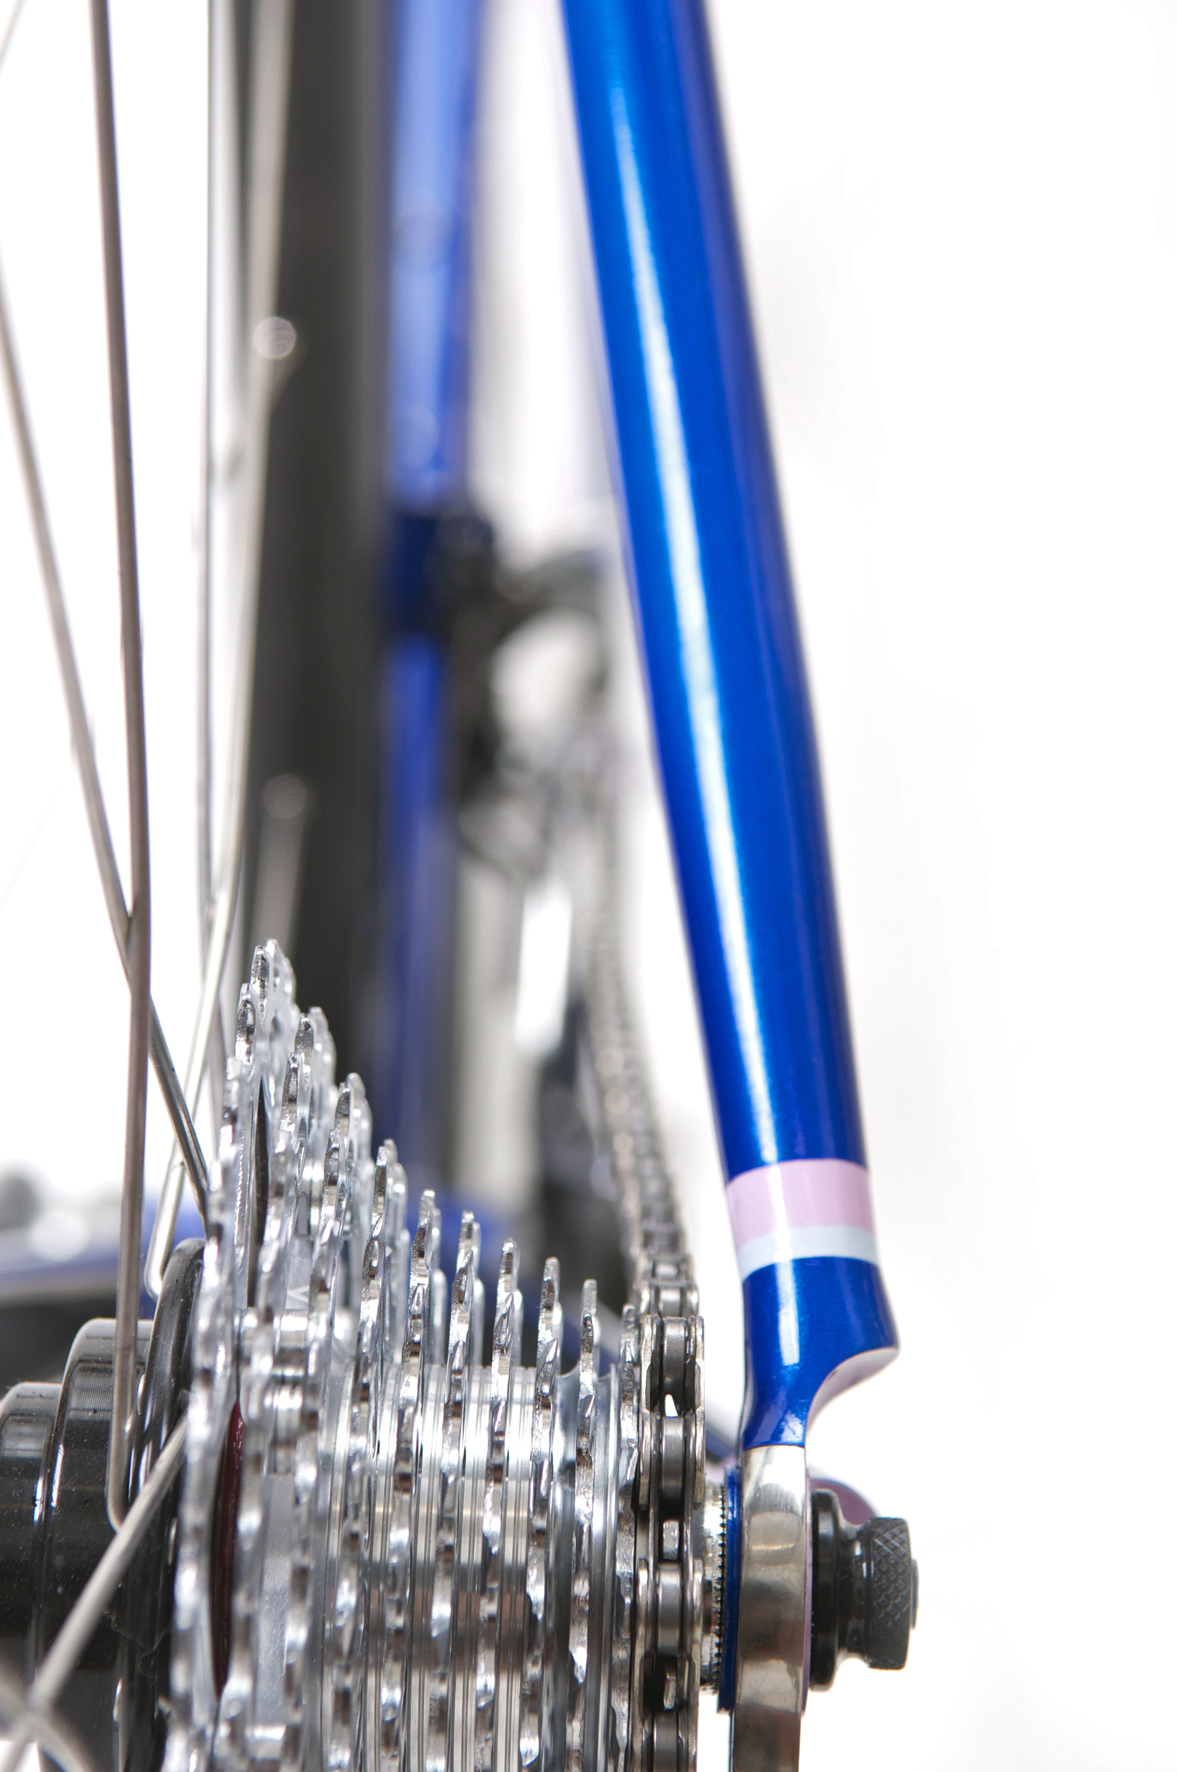 Peters Bespoke Road Bike Seat stays and painted in house in metallic cobalt blue with pale pink and blue detailing